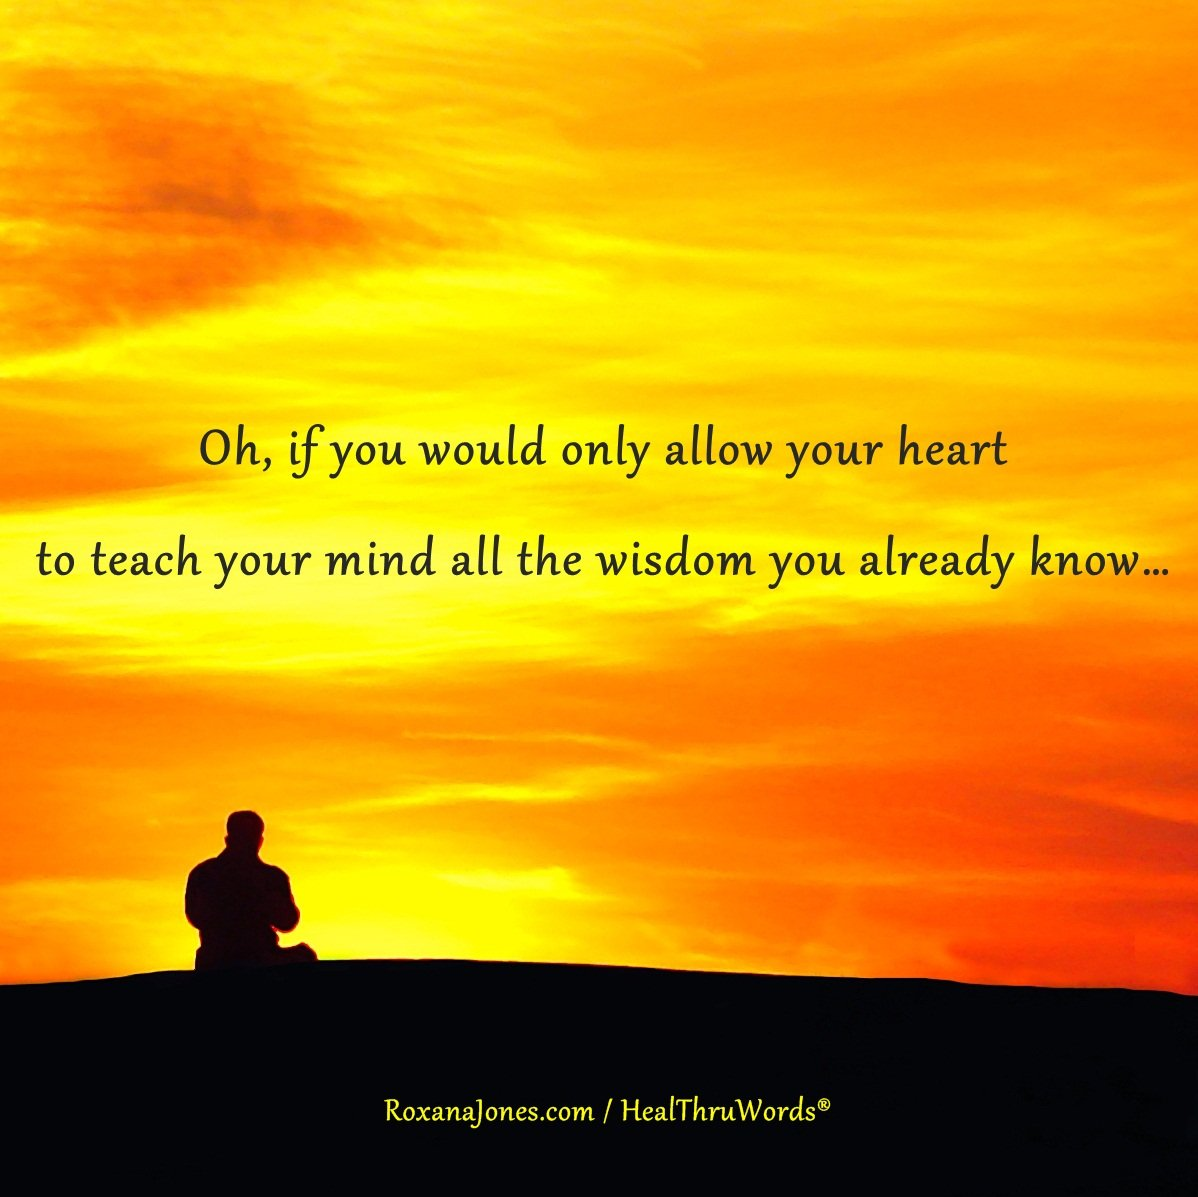 Inspirational Image: Your Wise Heart